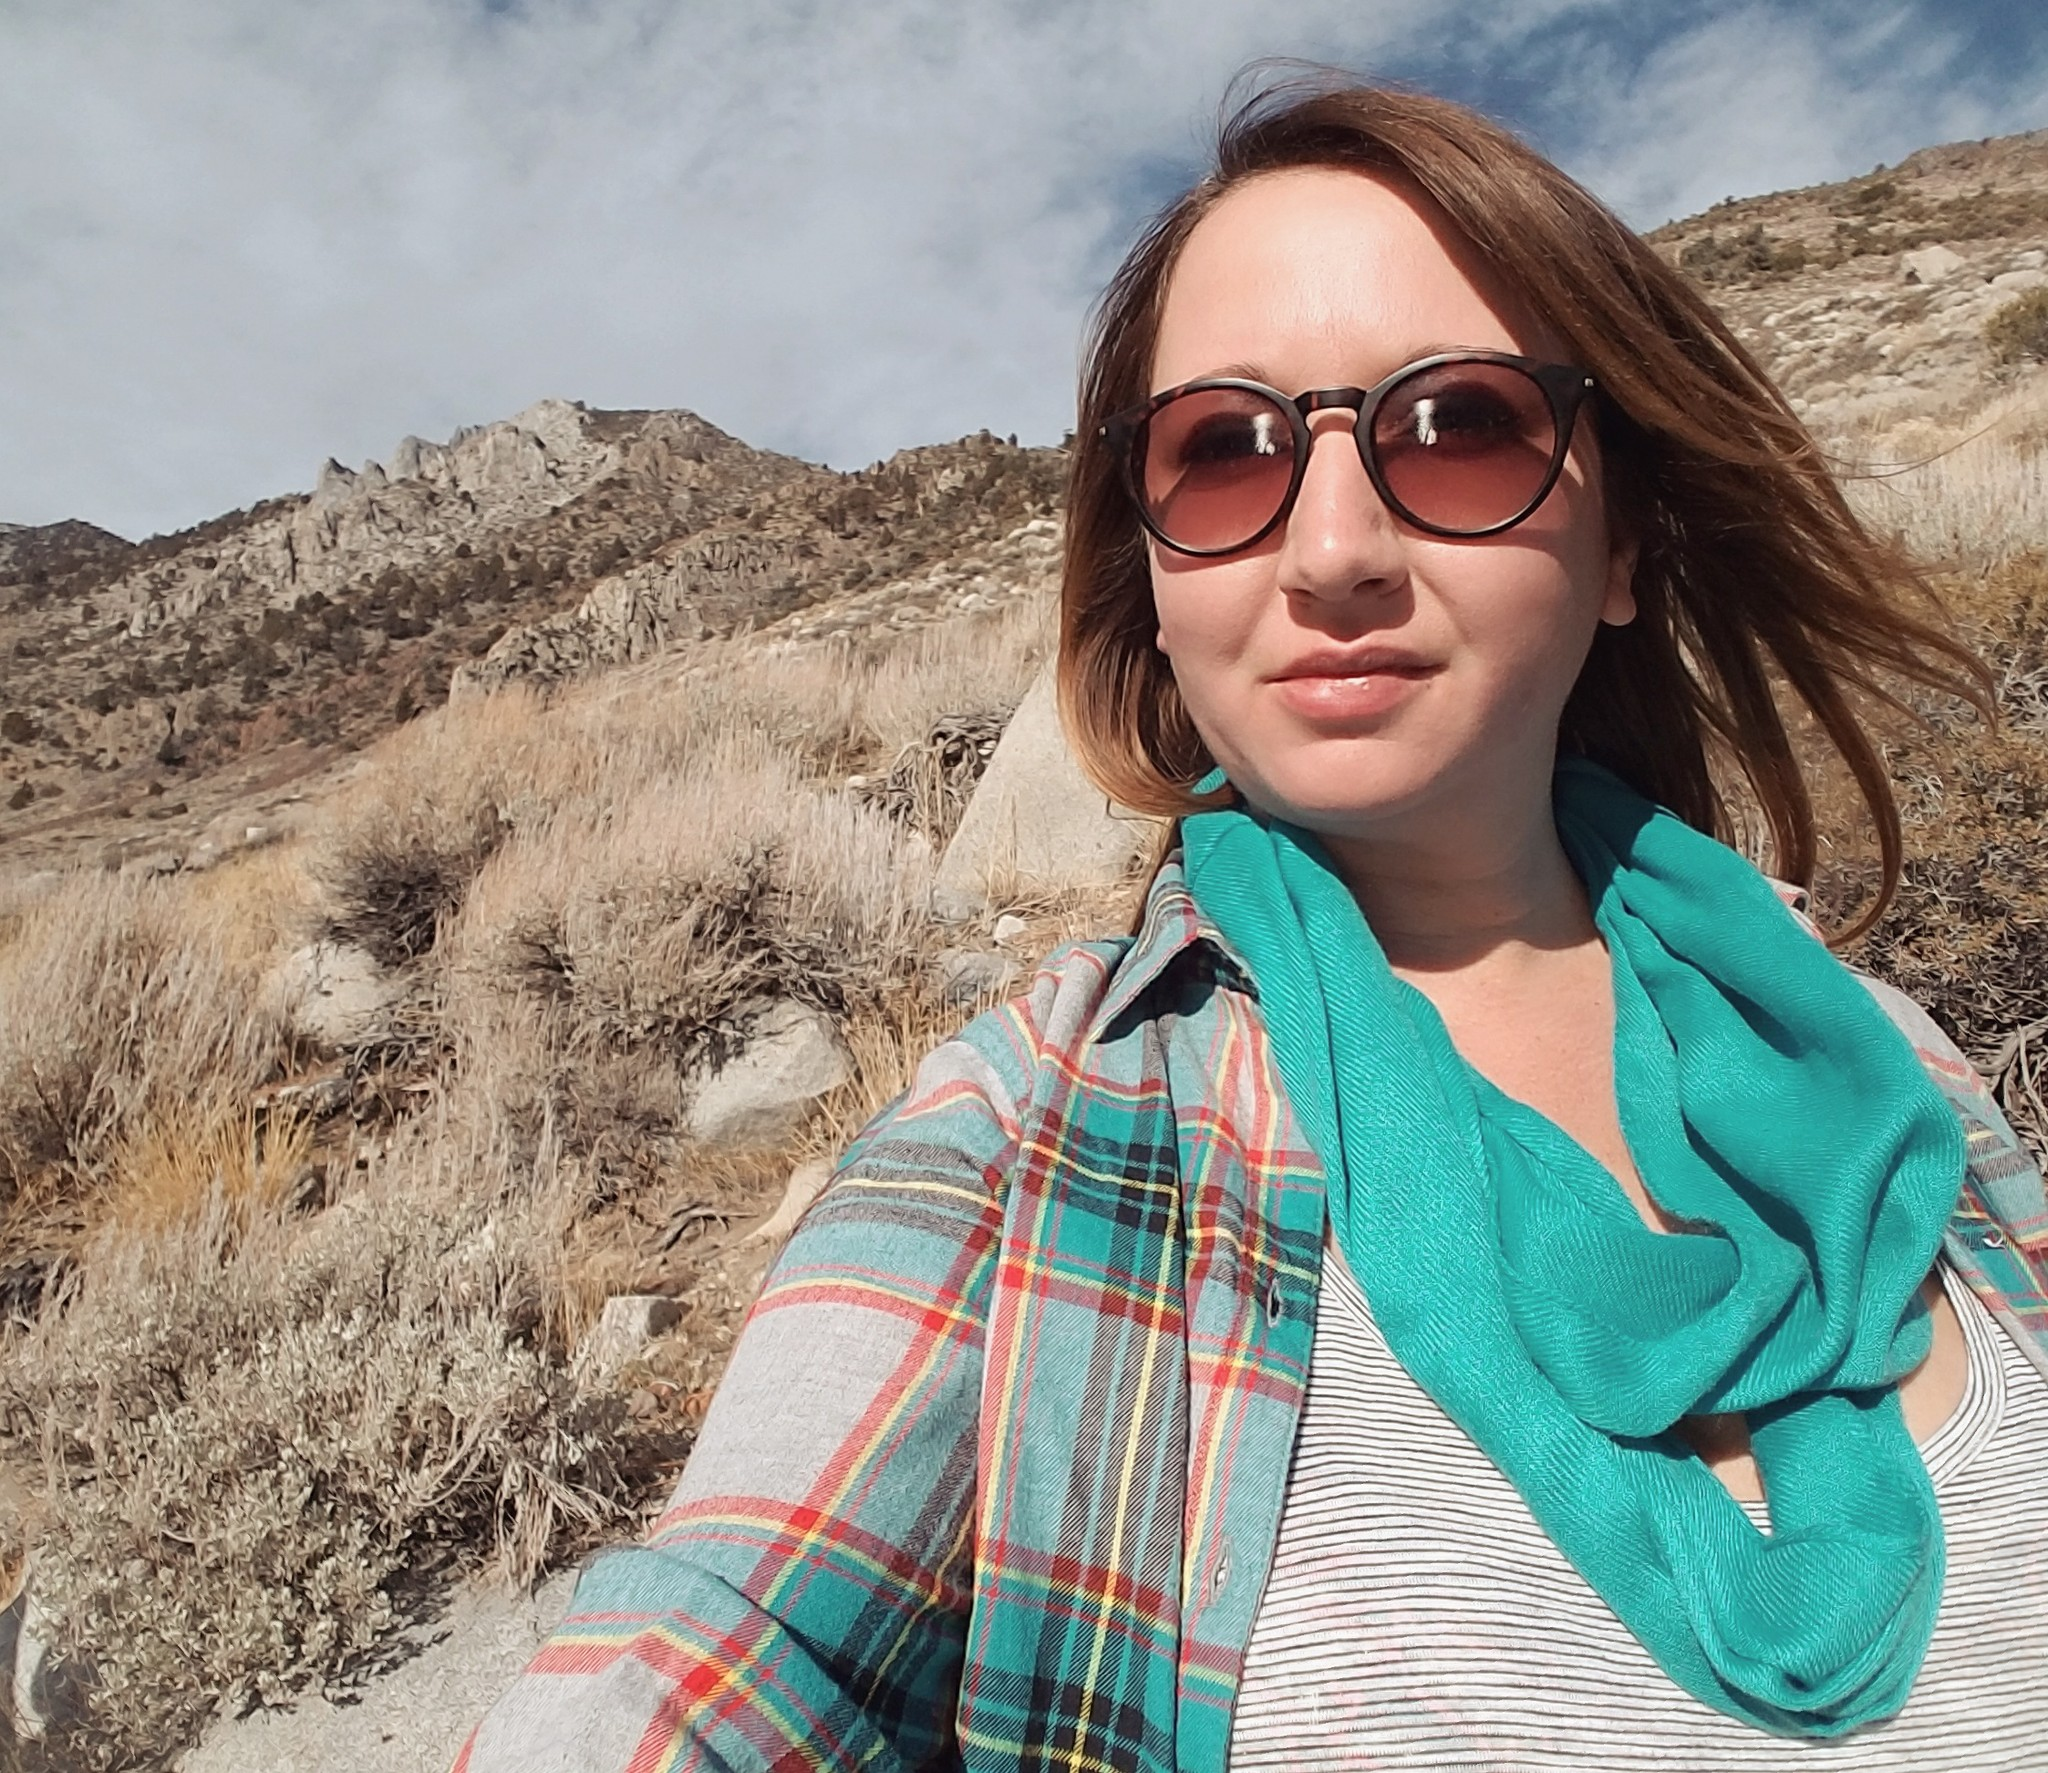 Convict-lake-hike-selfie